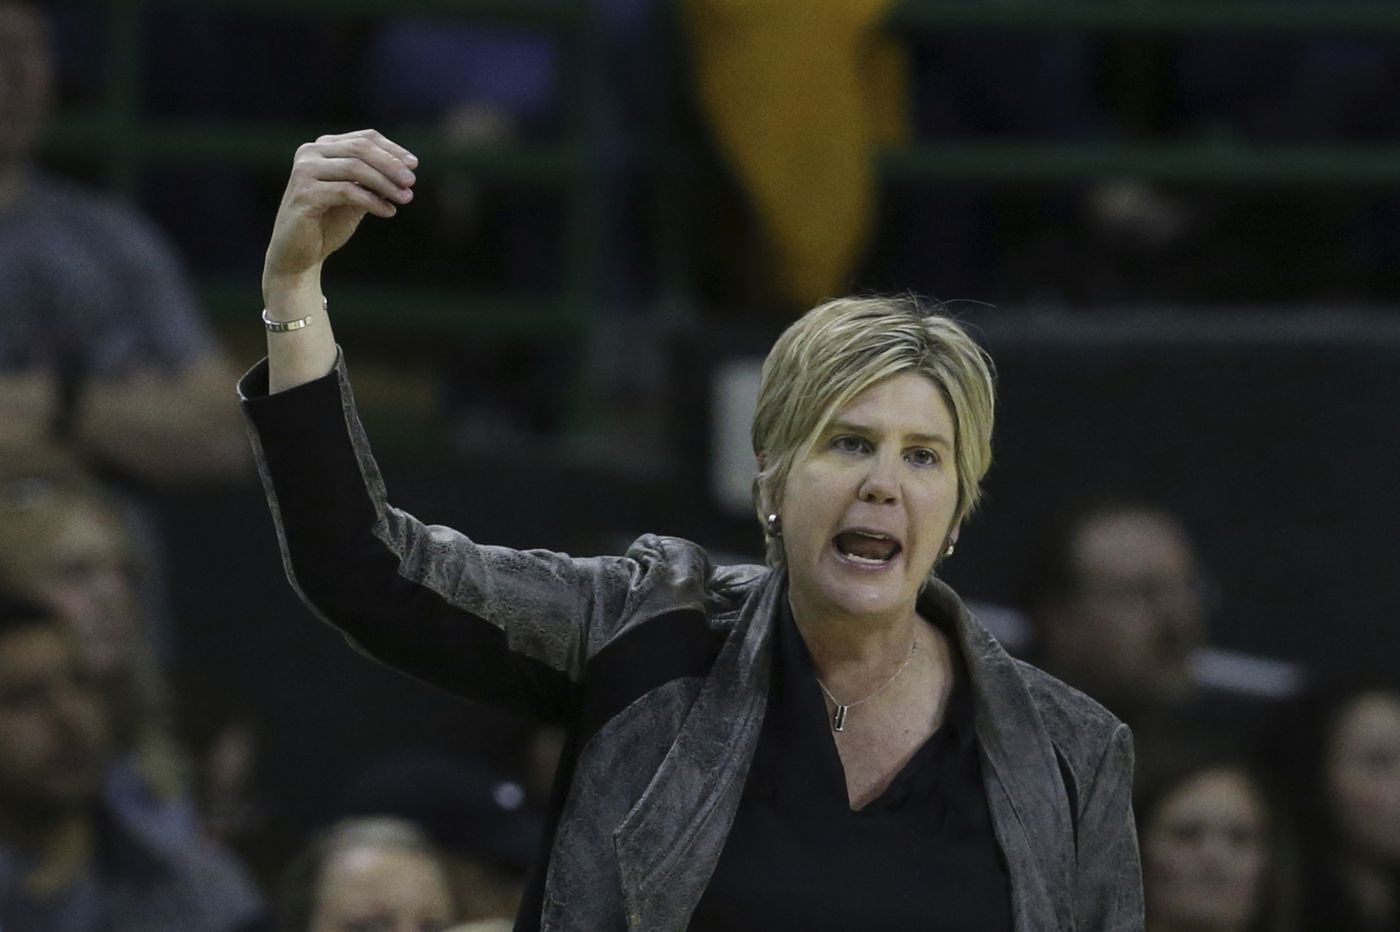 Texas Tech women's basketball players describe toxic culture under Marlene Stollings, Melanie Newman makes history for Orioles, and other sports news